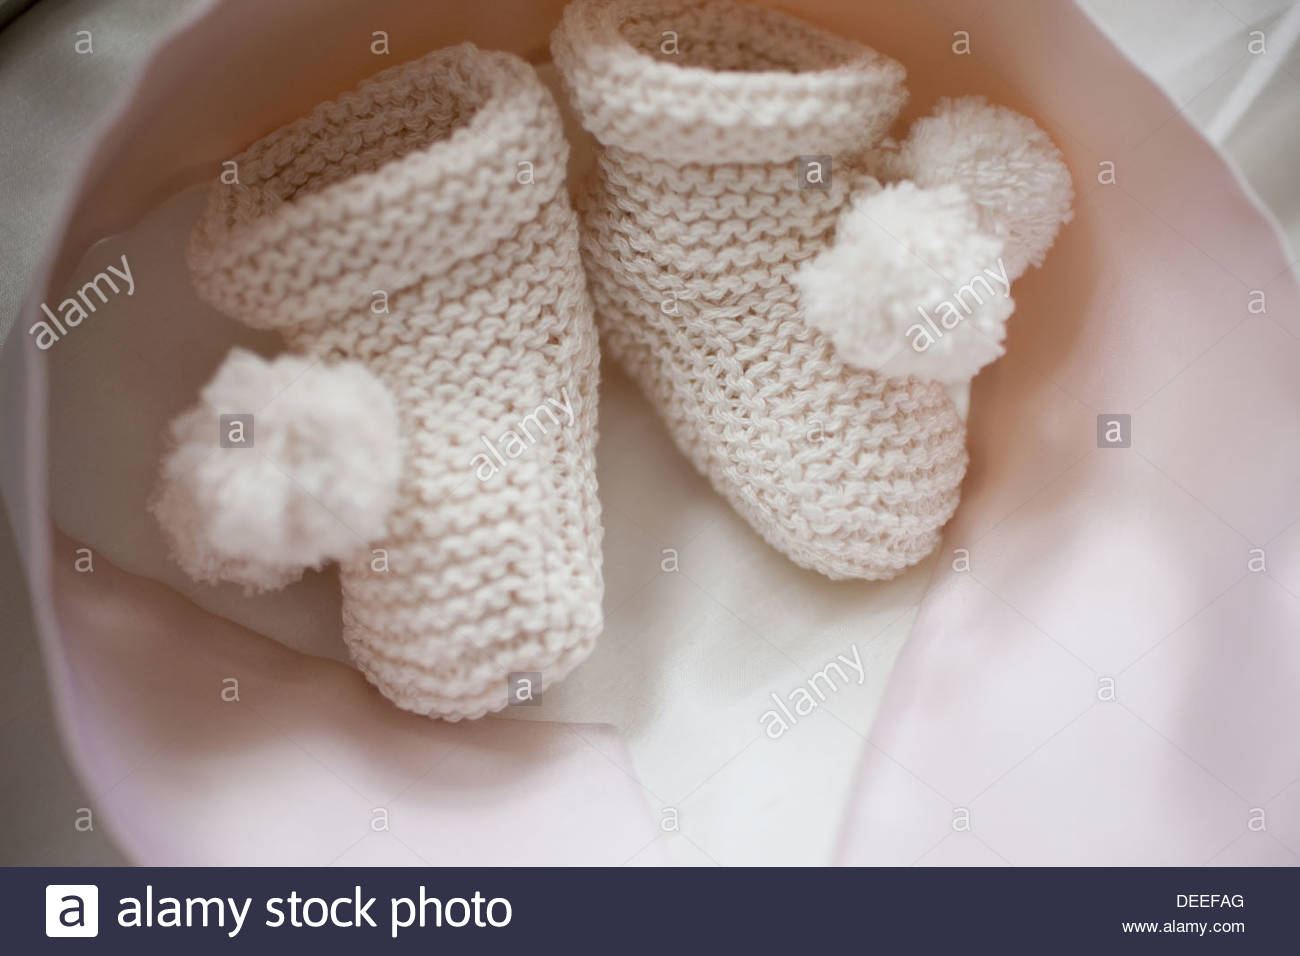 Close up of knit baby booties - Stock Image